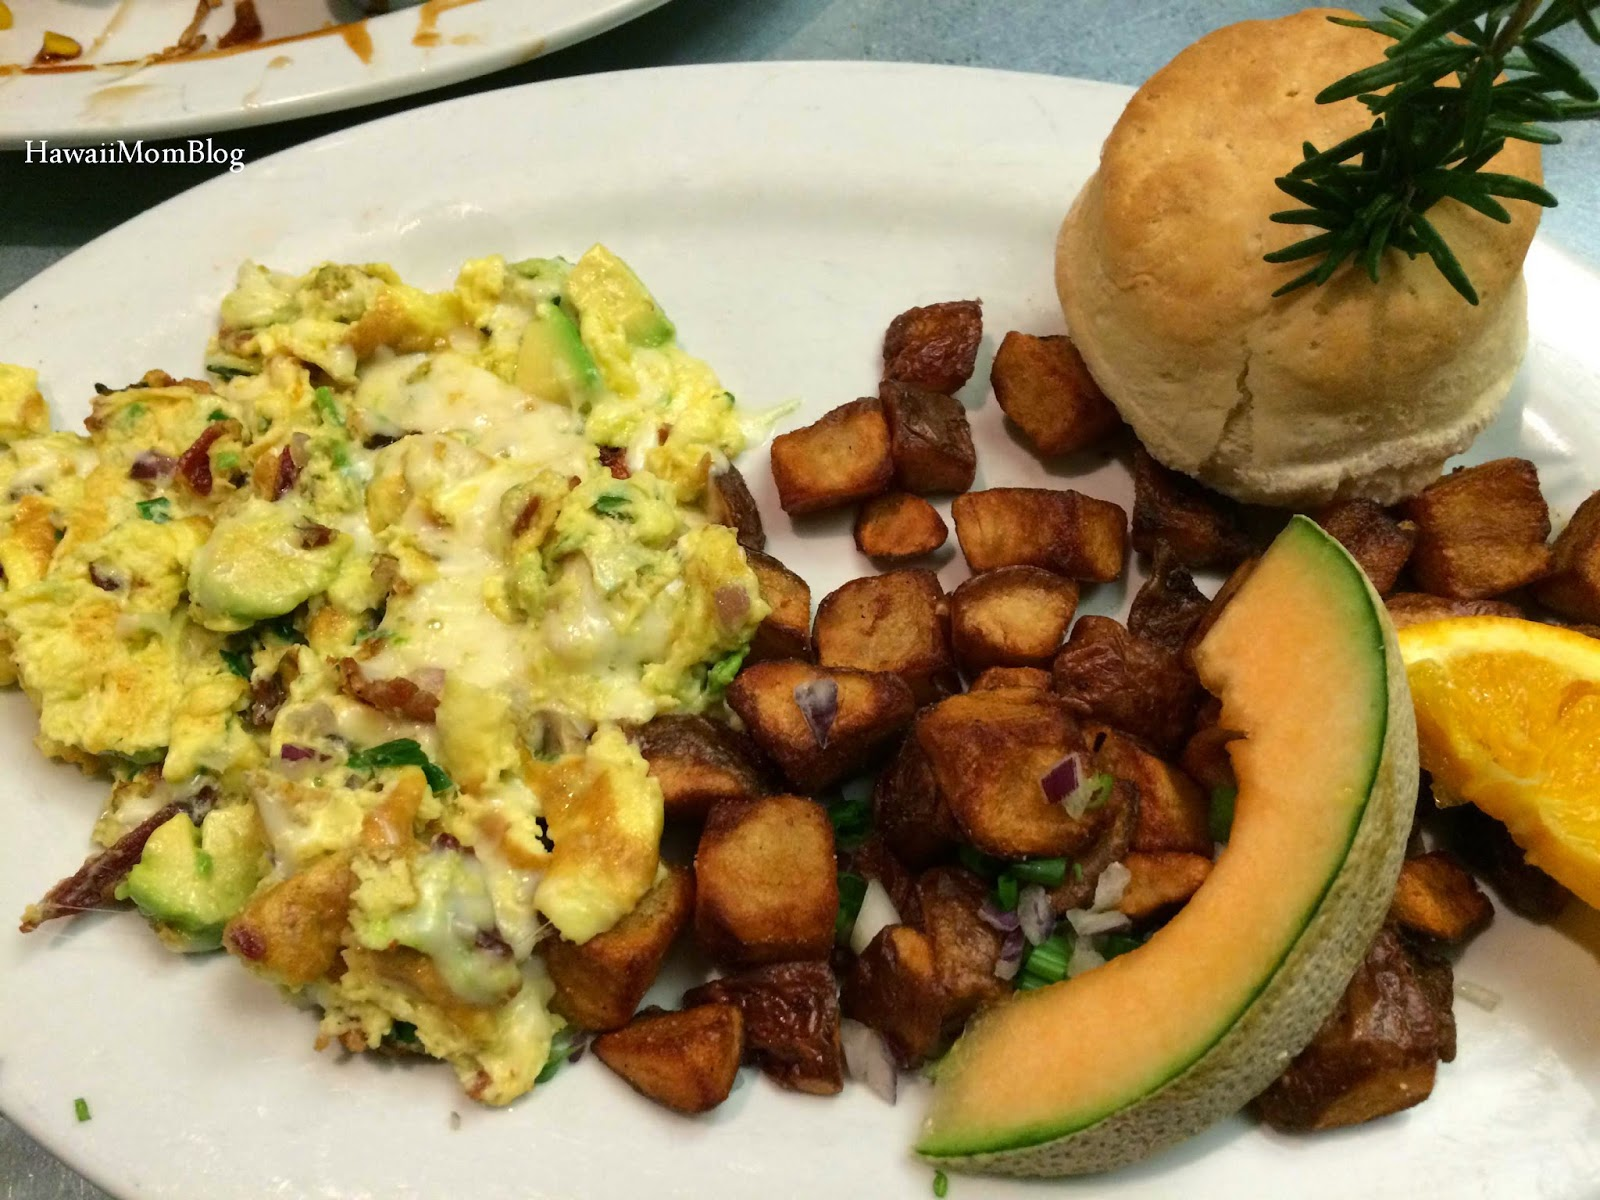 Hardwood Smoked Bacon, Avocado, Onion U0026 Swiss Cheese Farmeru0027s Scramble With  Crispy Potatoes